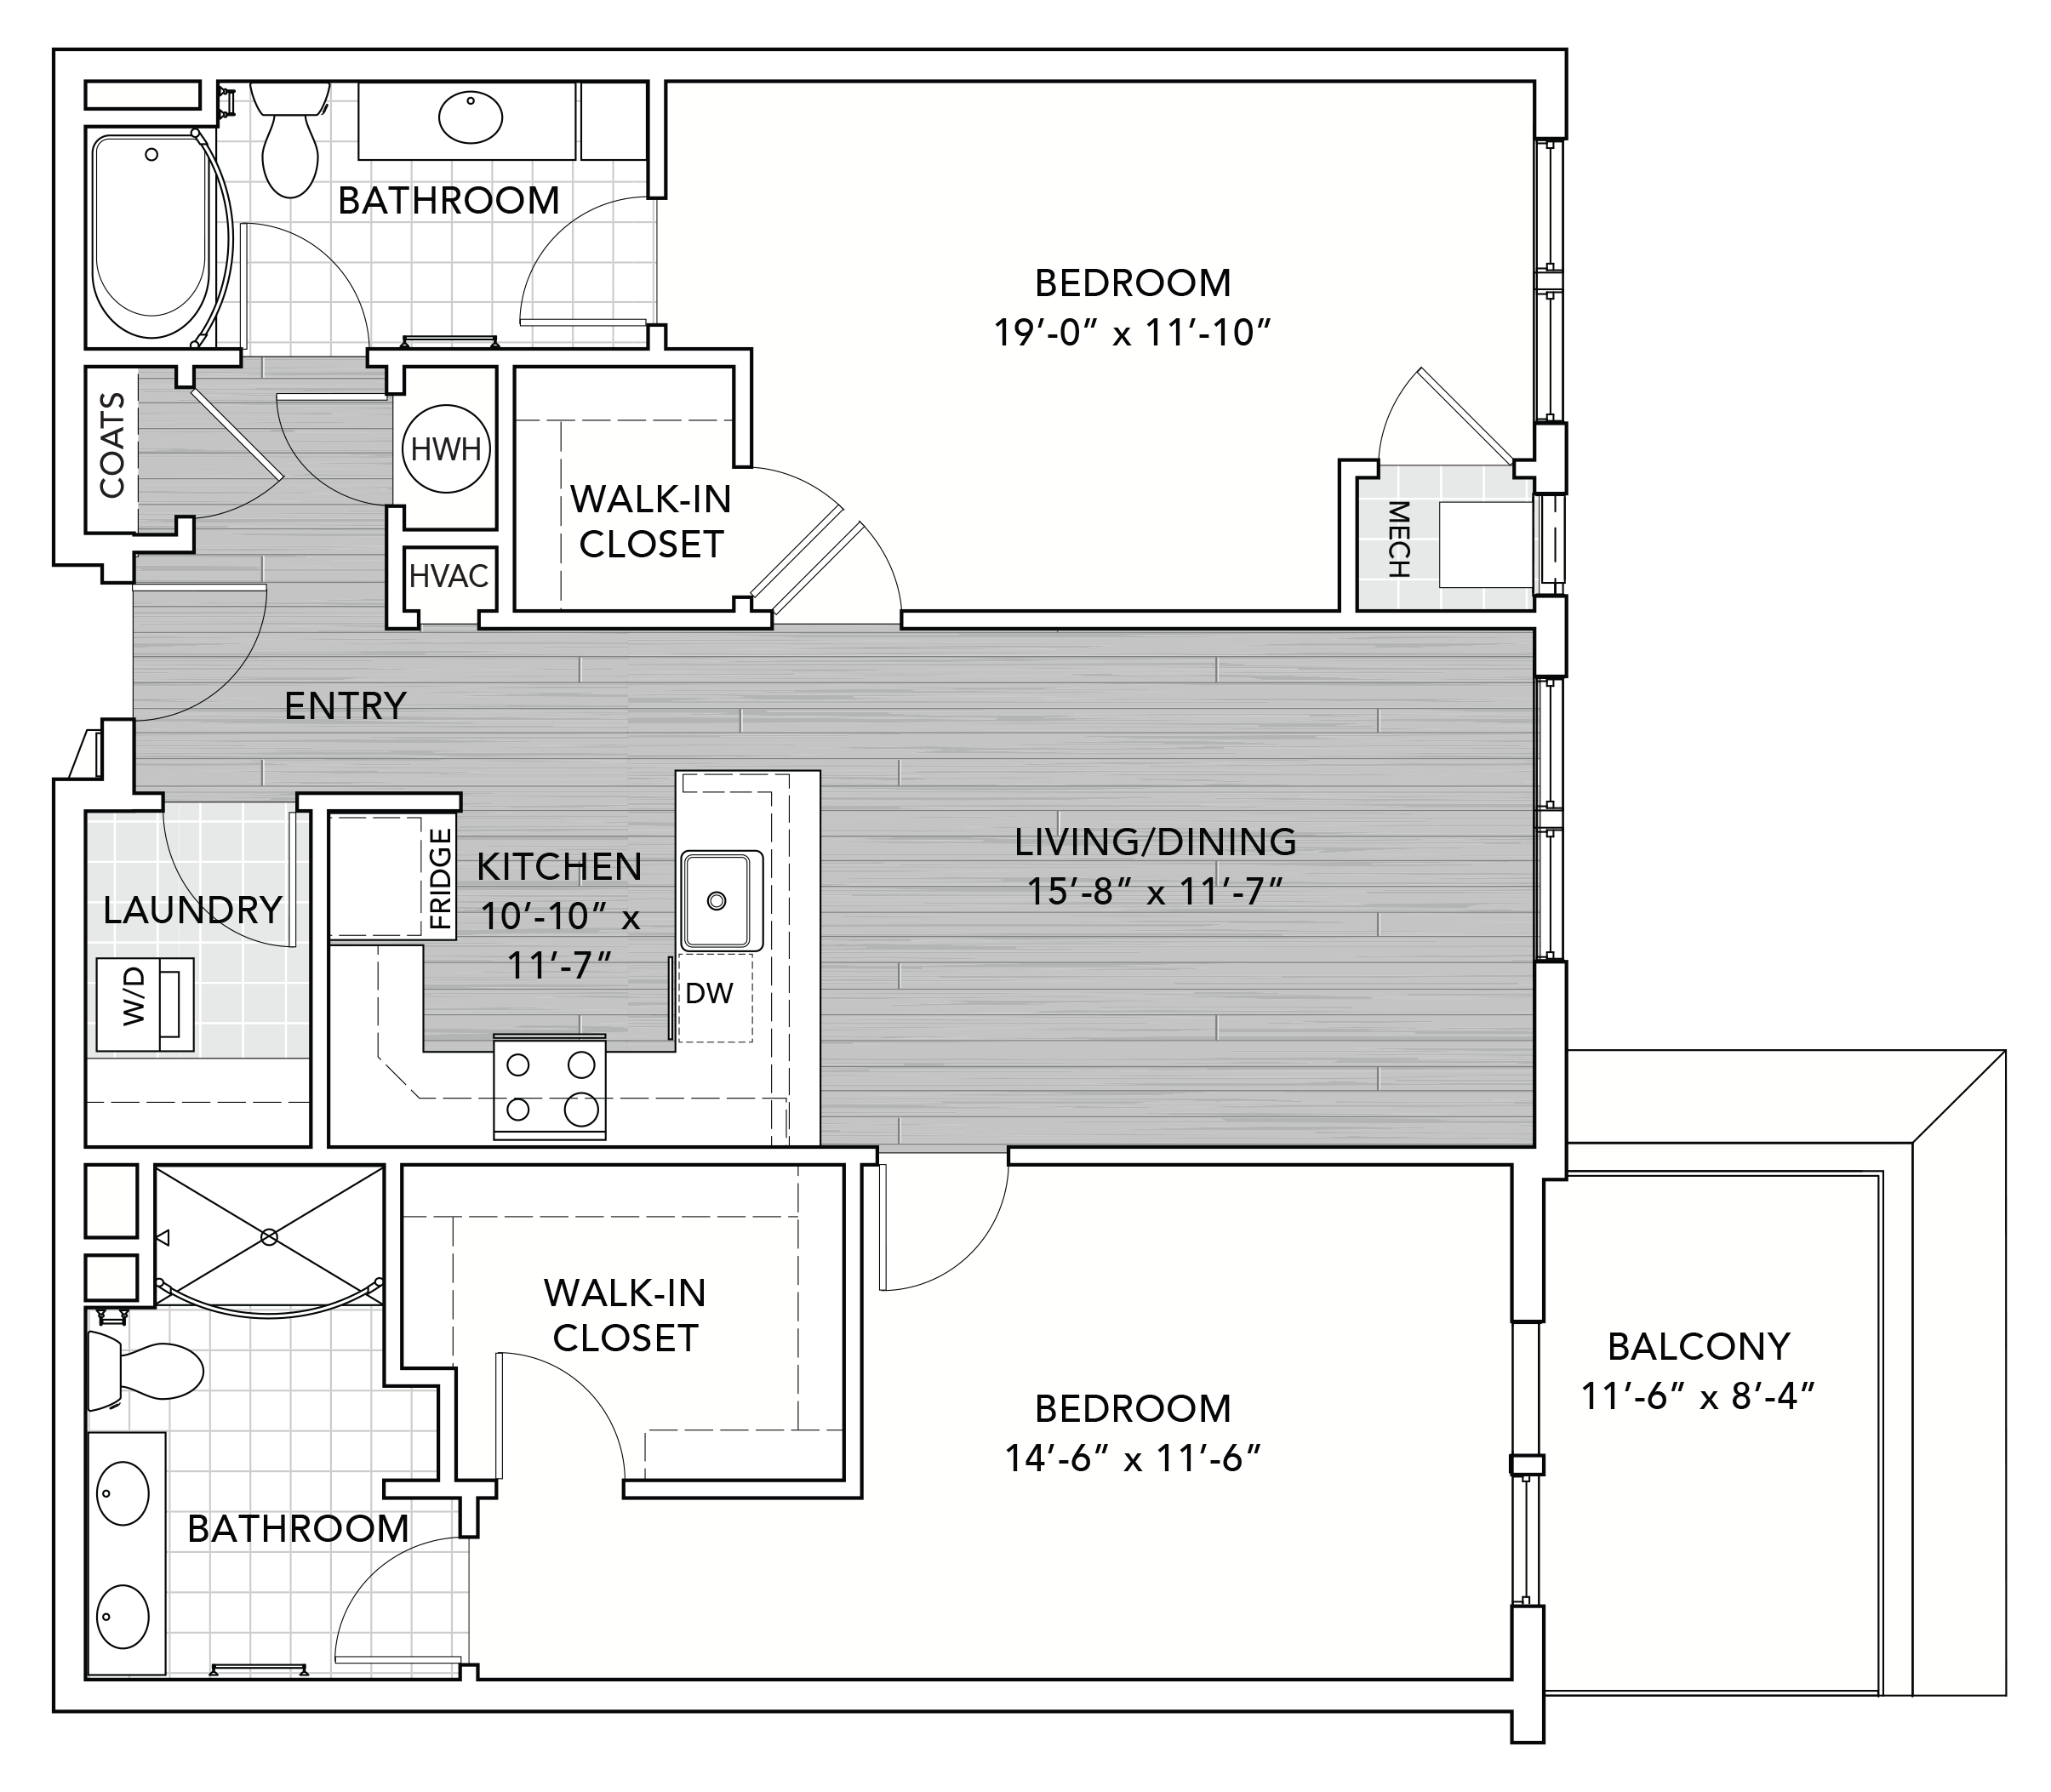 P0655013 parksquare b4 1198 2 floorplan